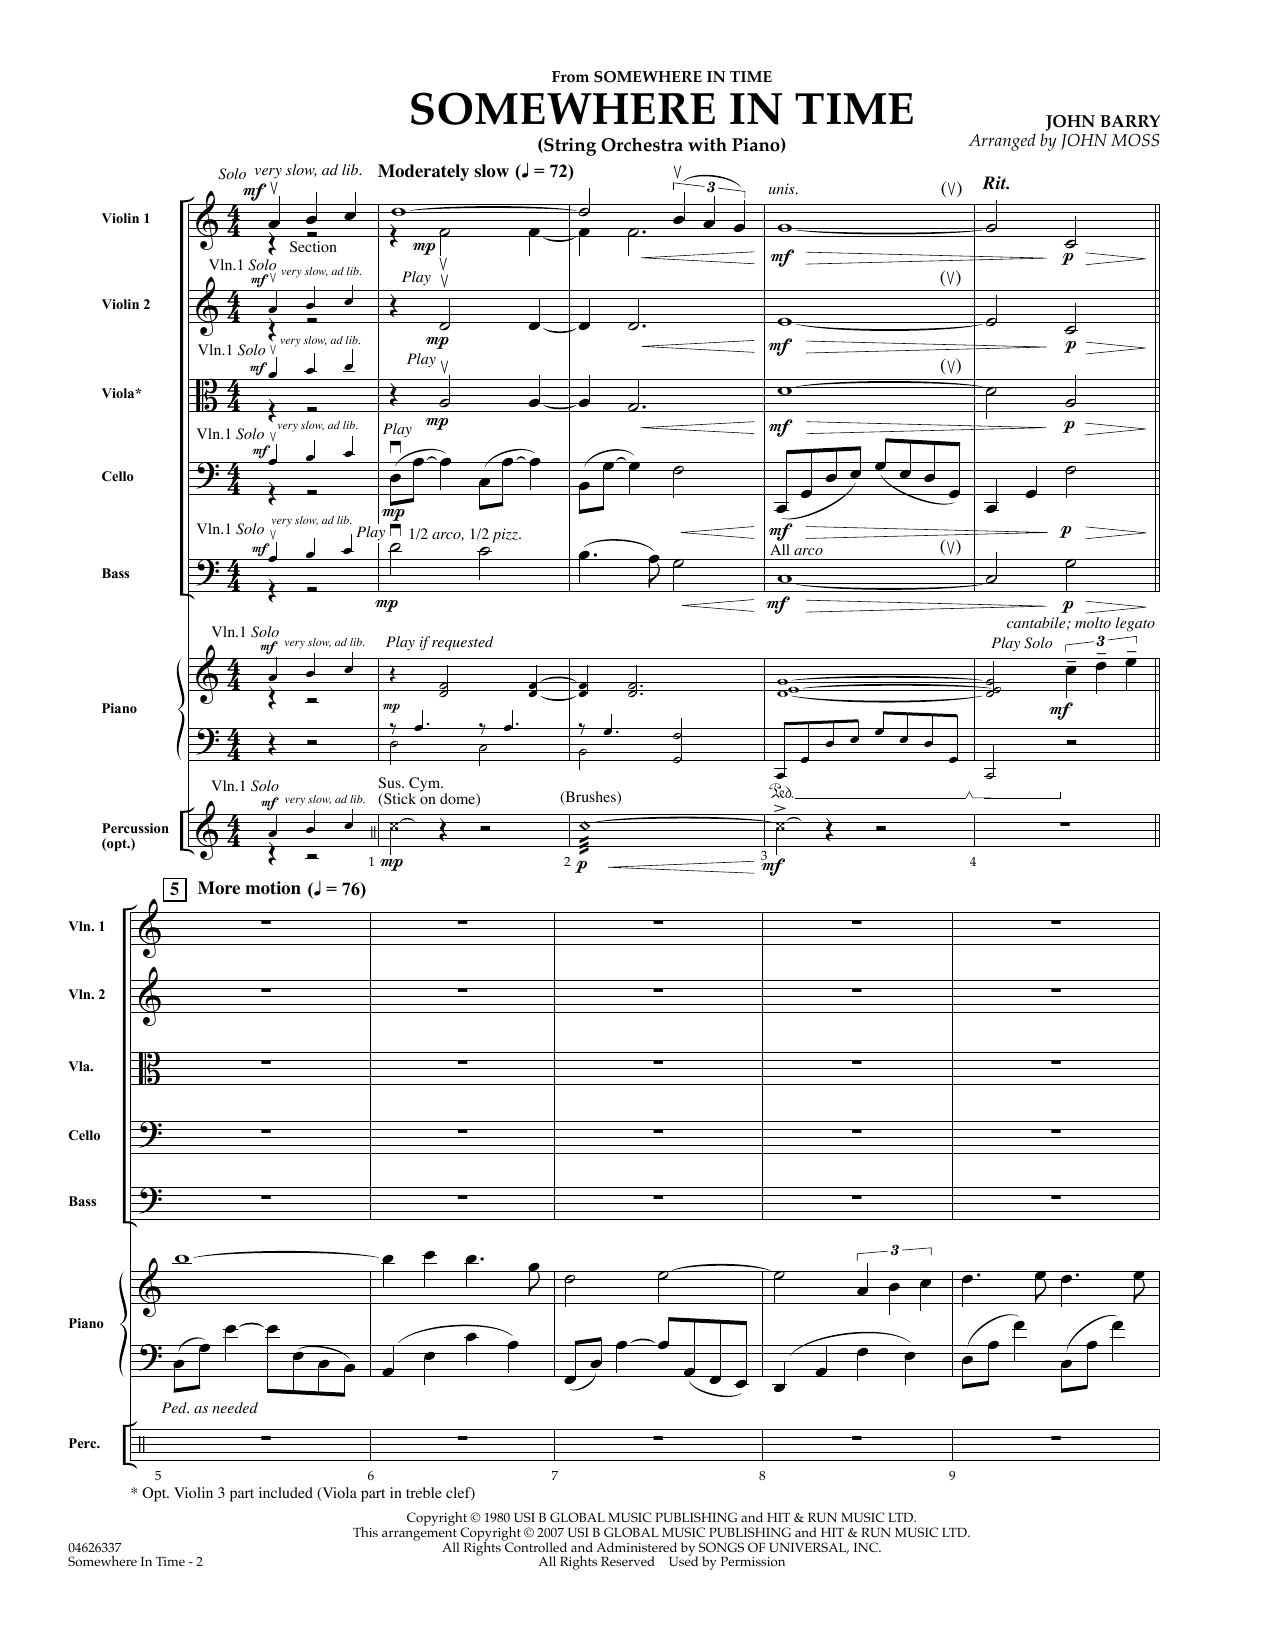 Somewhere in Time (COMPLETE) sheet music for orchestra by John Moss, B.A. Robertson and John Barry. Score Image Preview.